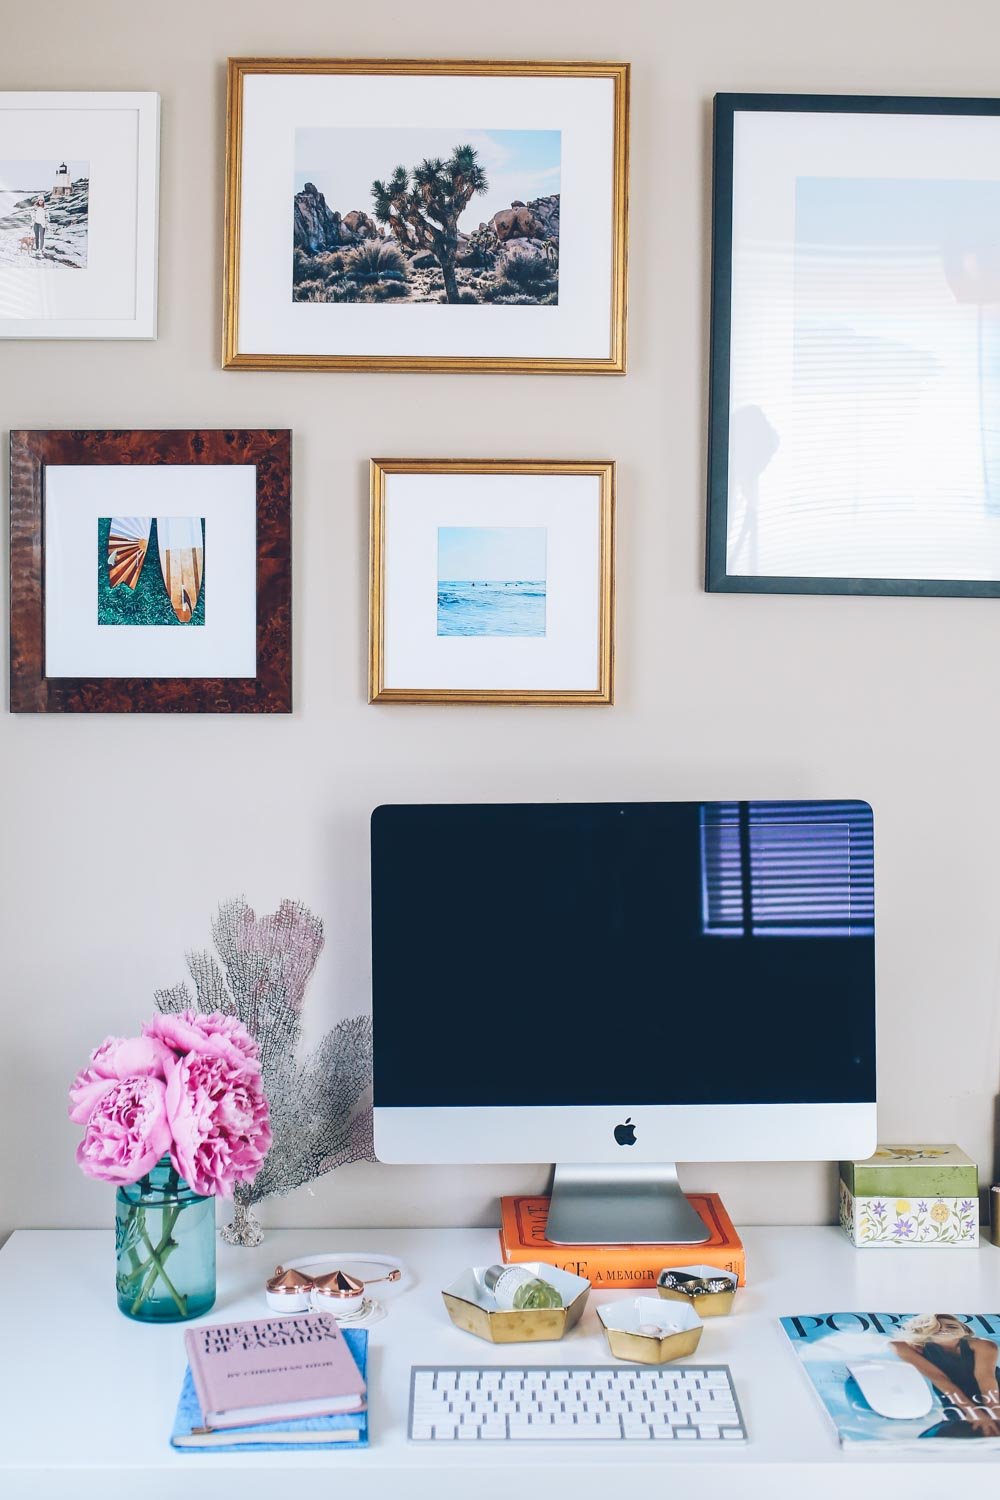 Jess Ann Kirby's home office setup with a gallery wall